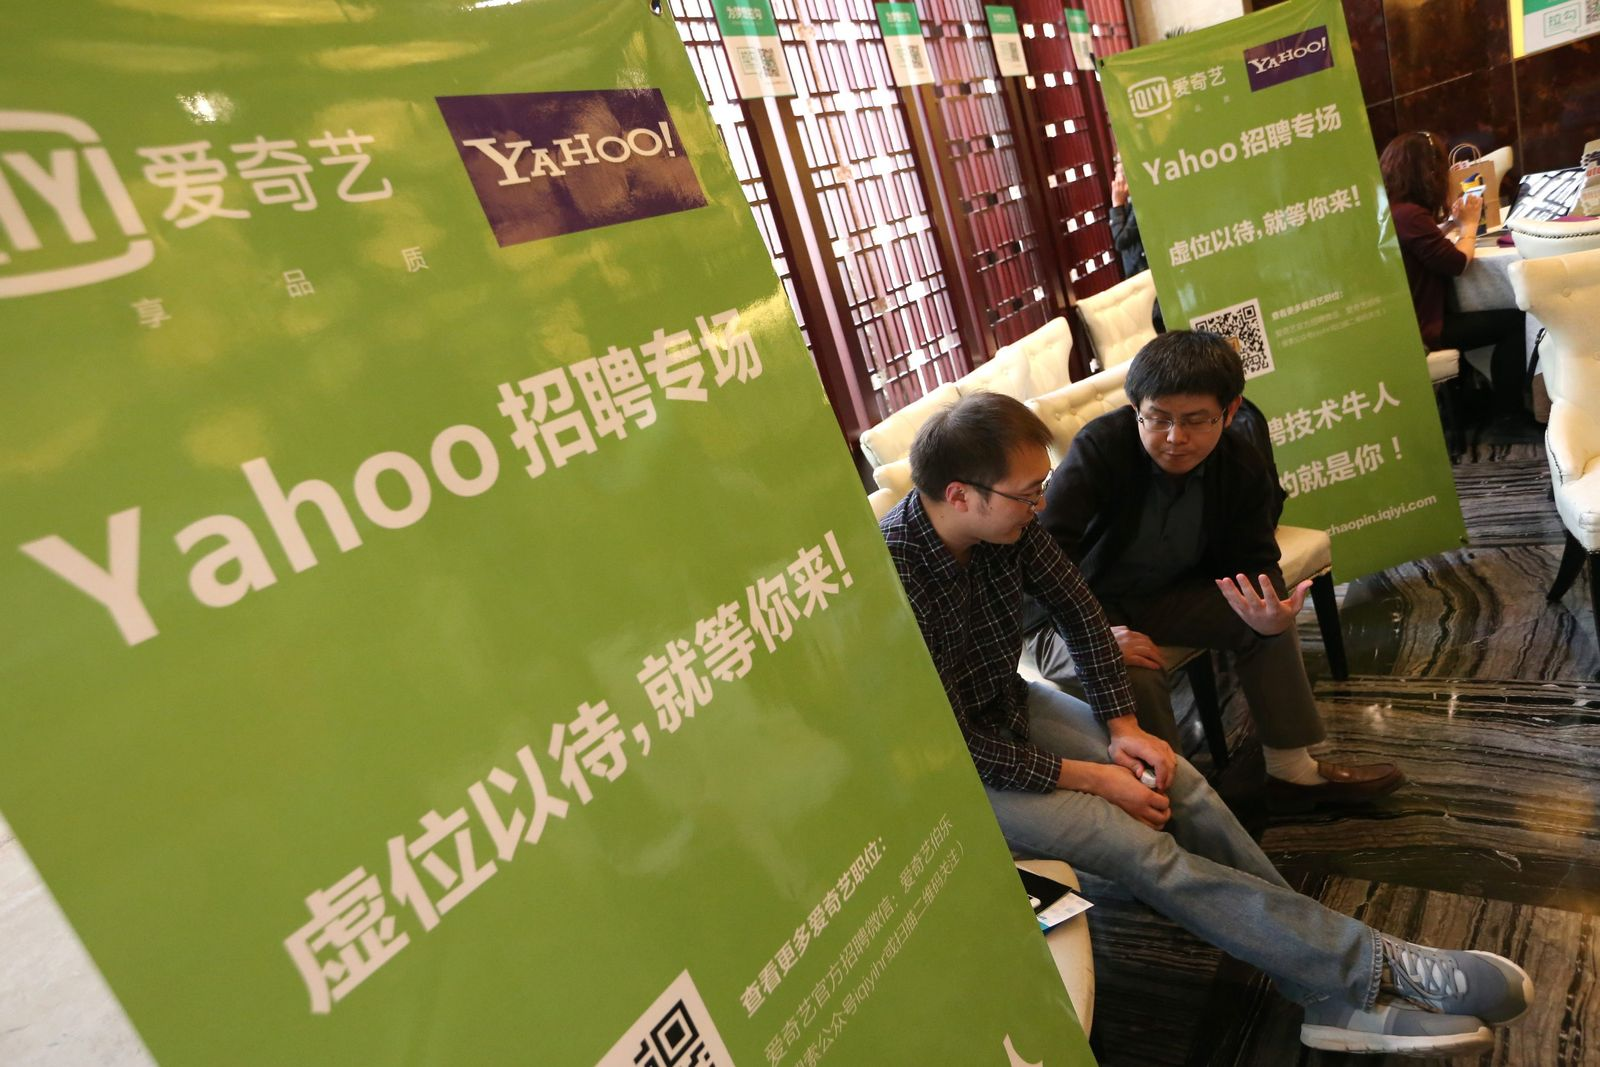 Yahoo closes its research and development office in Beijing